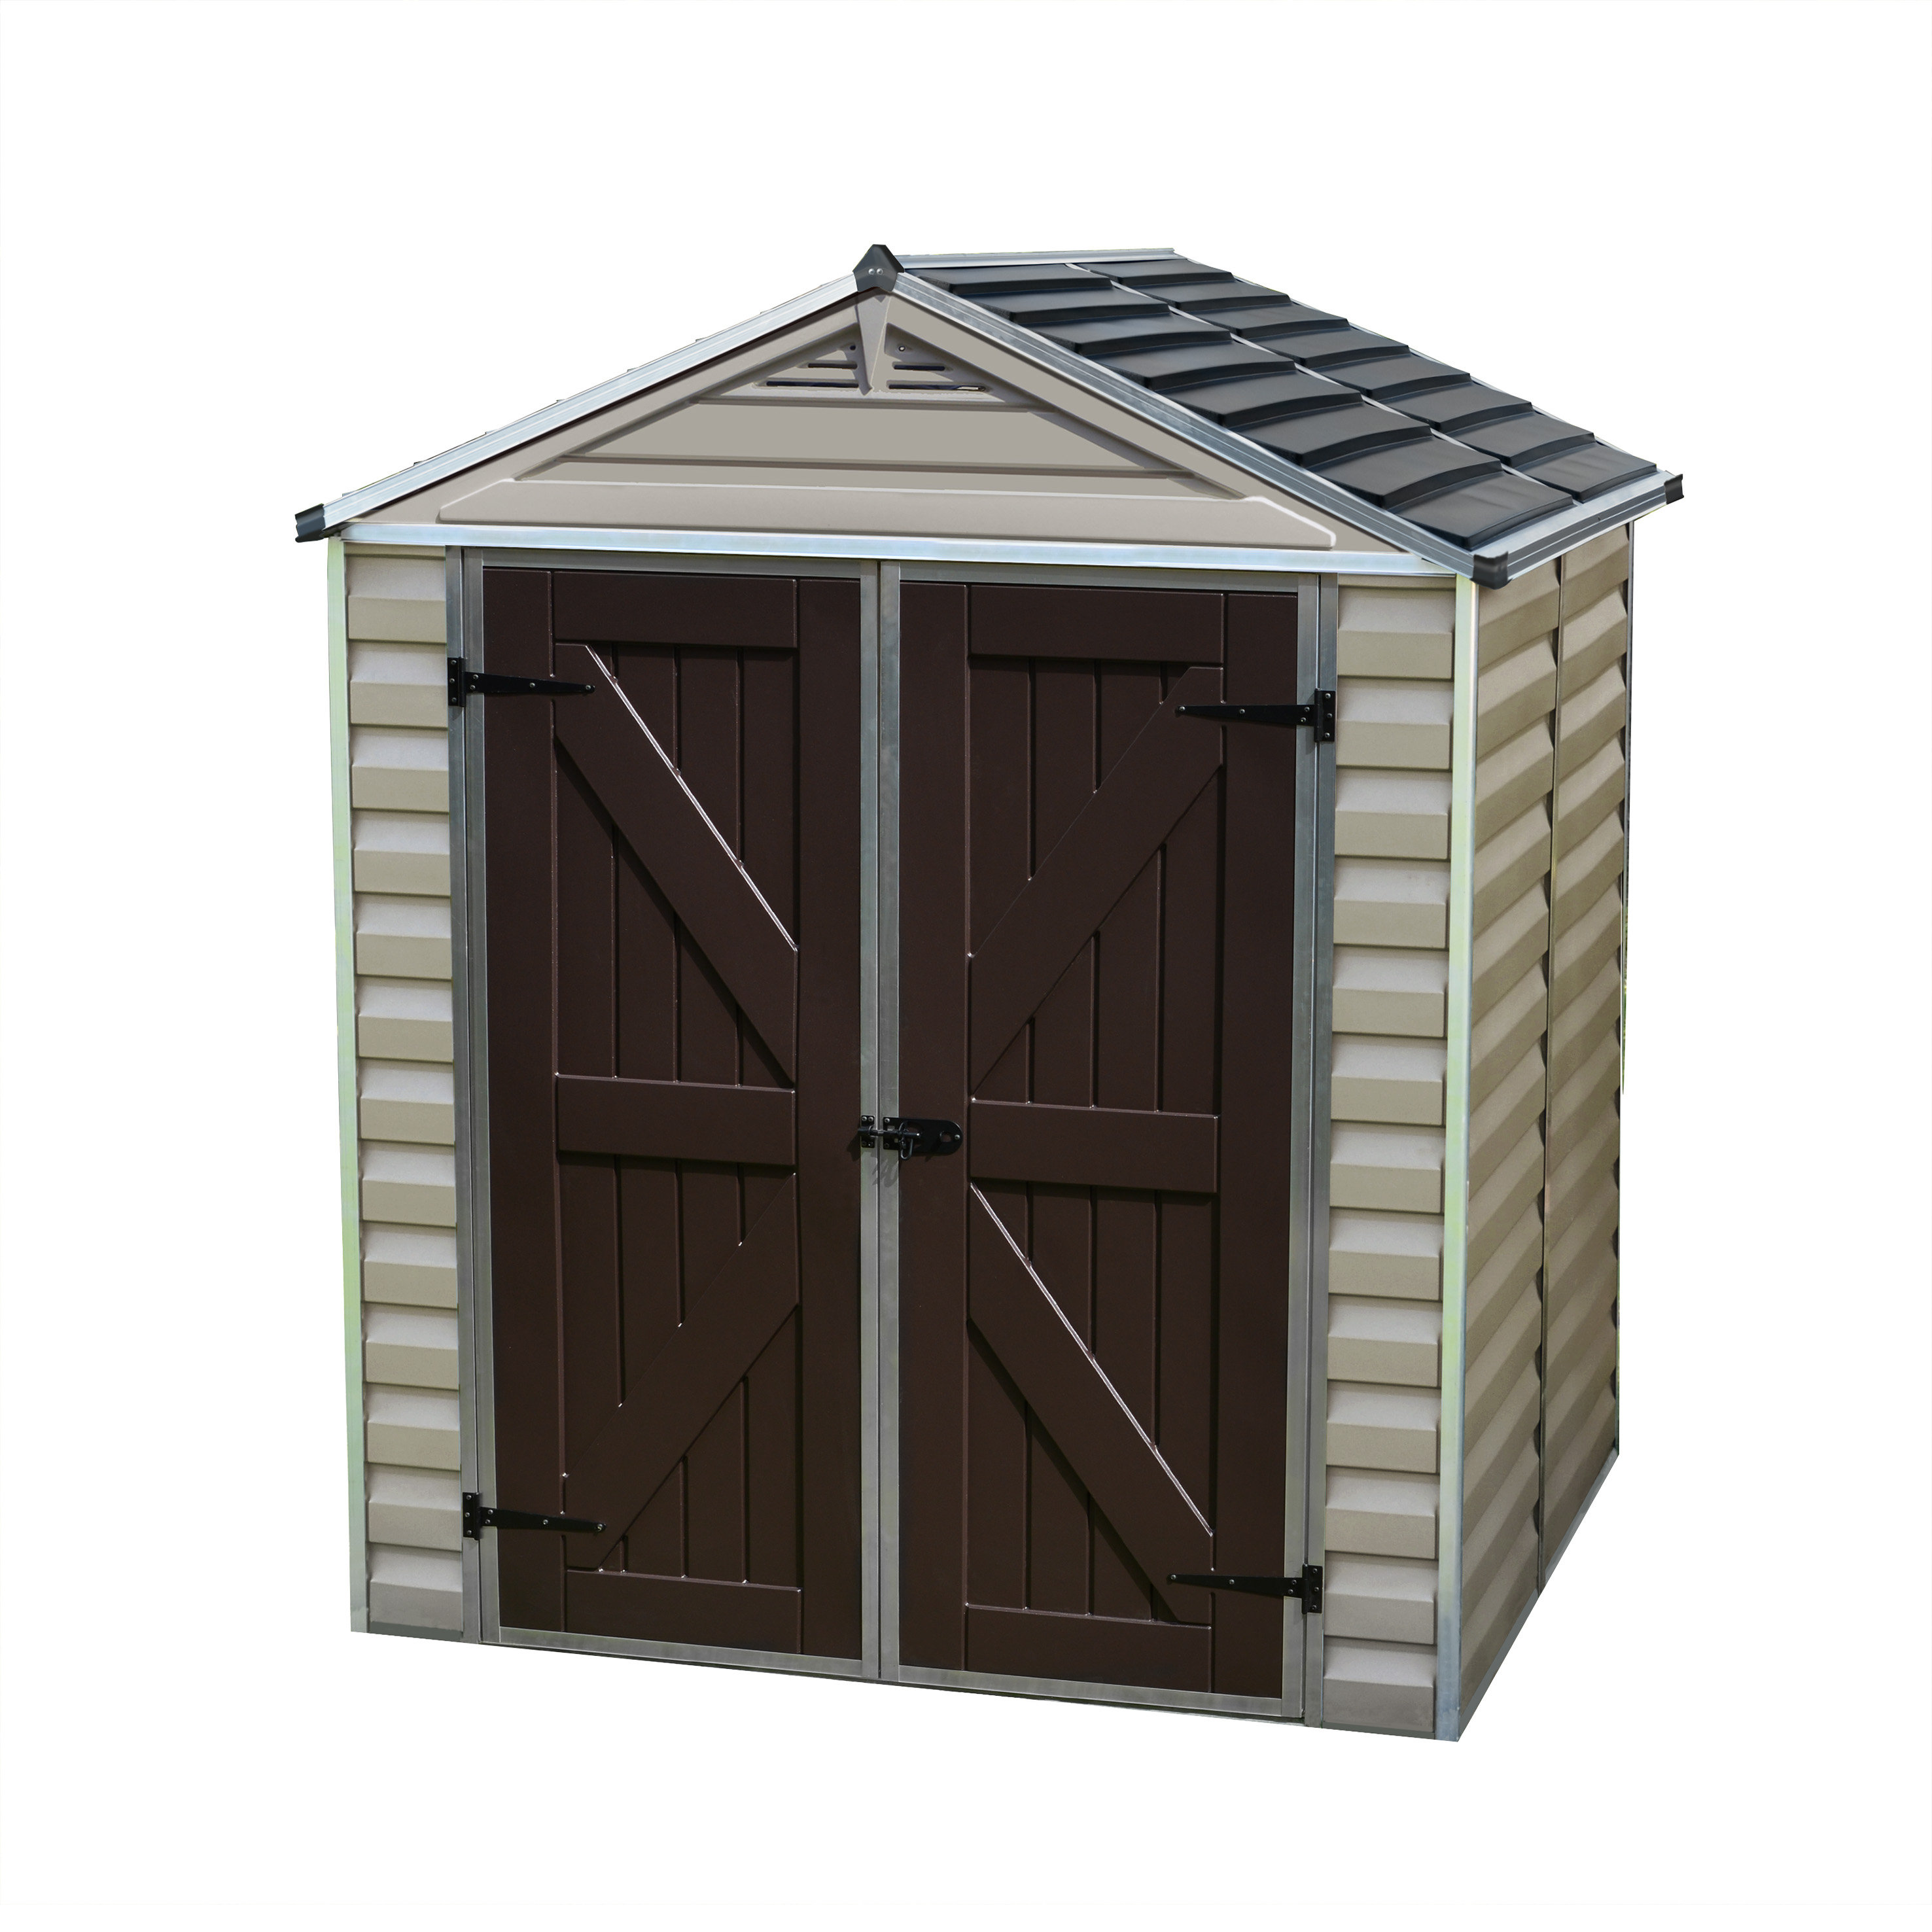 Palram Skylight Shed, 6' x 5', Tan